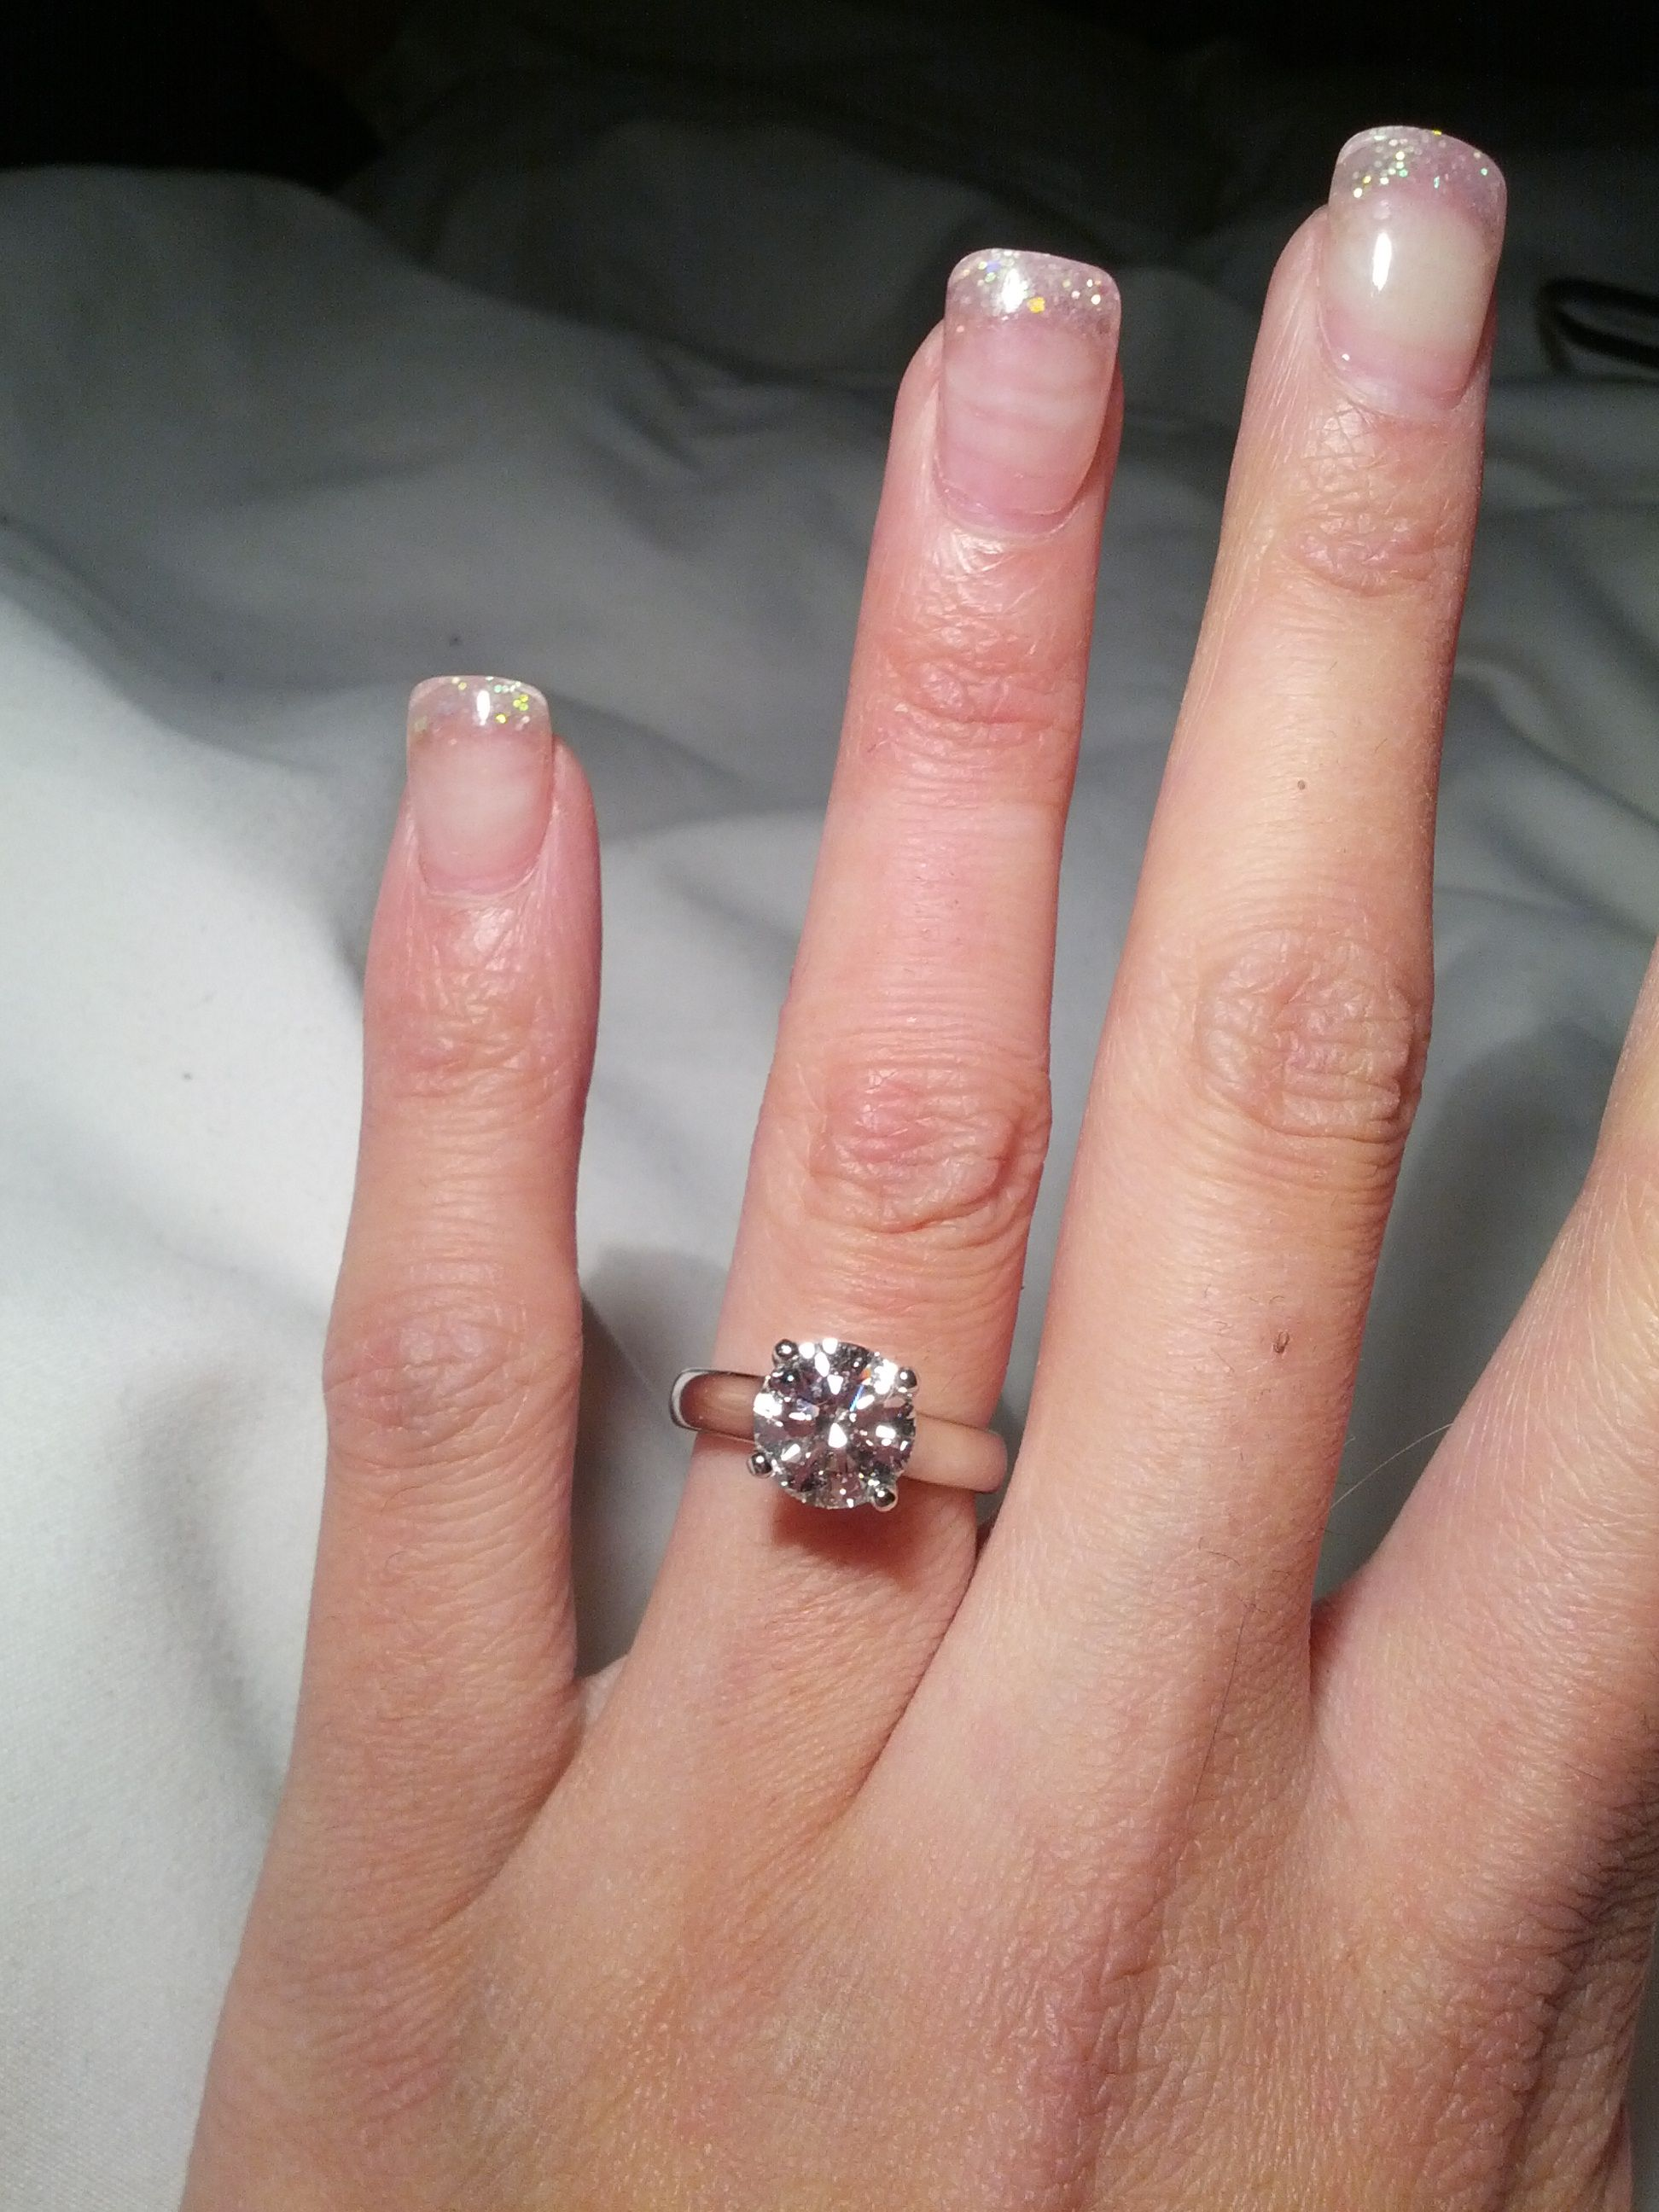 Size 5, 2.31 ct, GIA 3x Ideal H&A, VS2, I | One day... | Pinterest ...